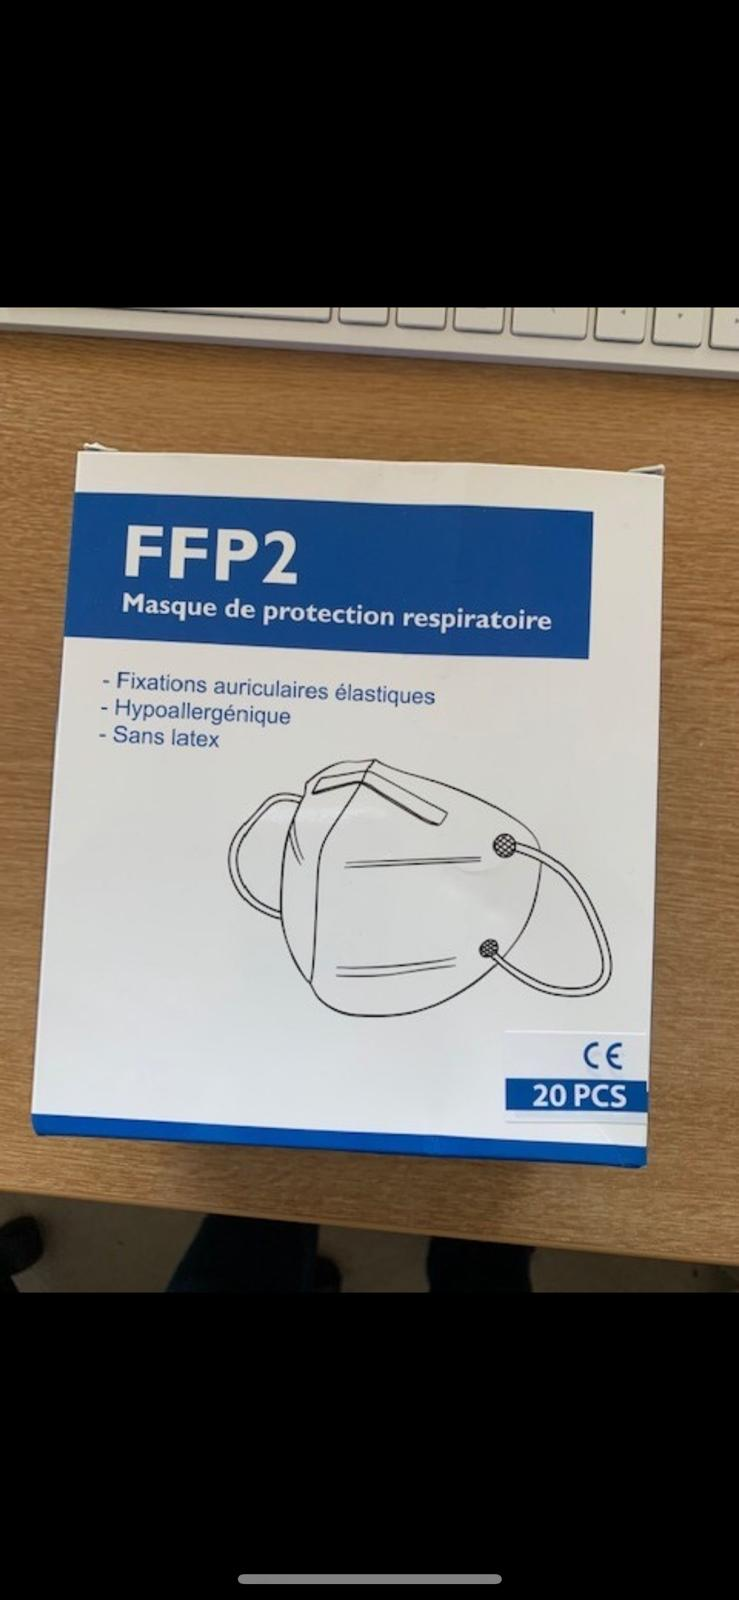 100 pcs Brand new sealed FFP2 mask - Image 2 of 2